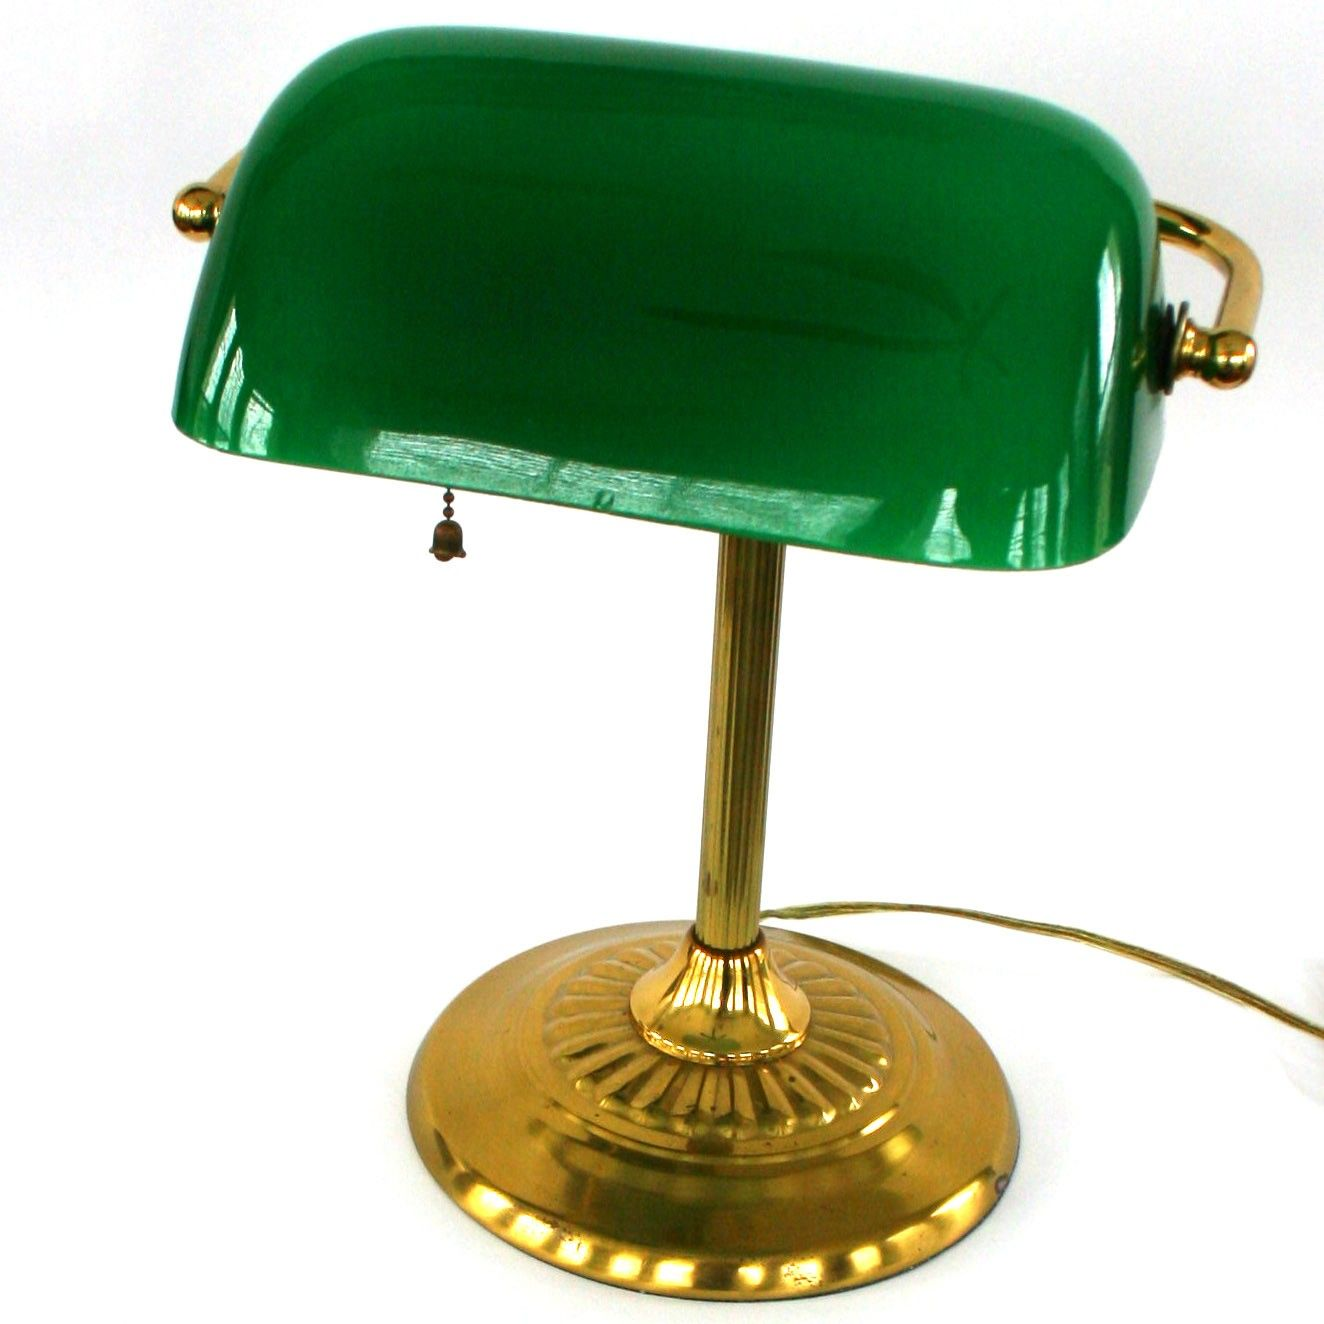 Old school banker lamp likes list pinterest bankers lamp desk vintage bankers lamp brass glass kelly green emerald home office desktop library decor bedside table light industrial eclectic sophisticated aloadofball